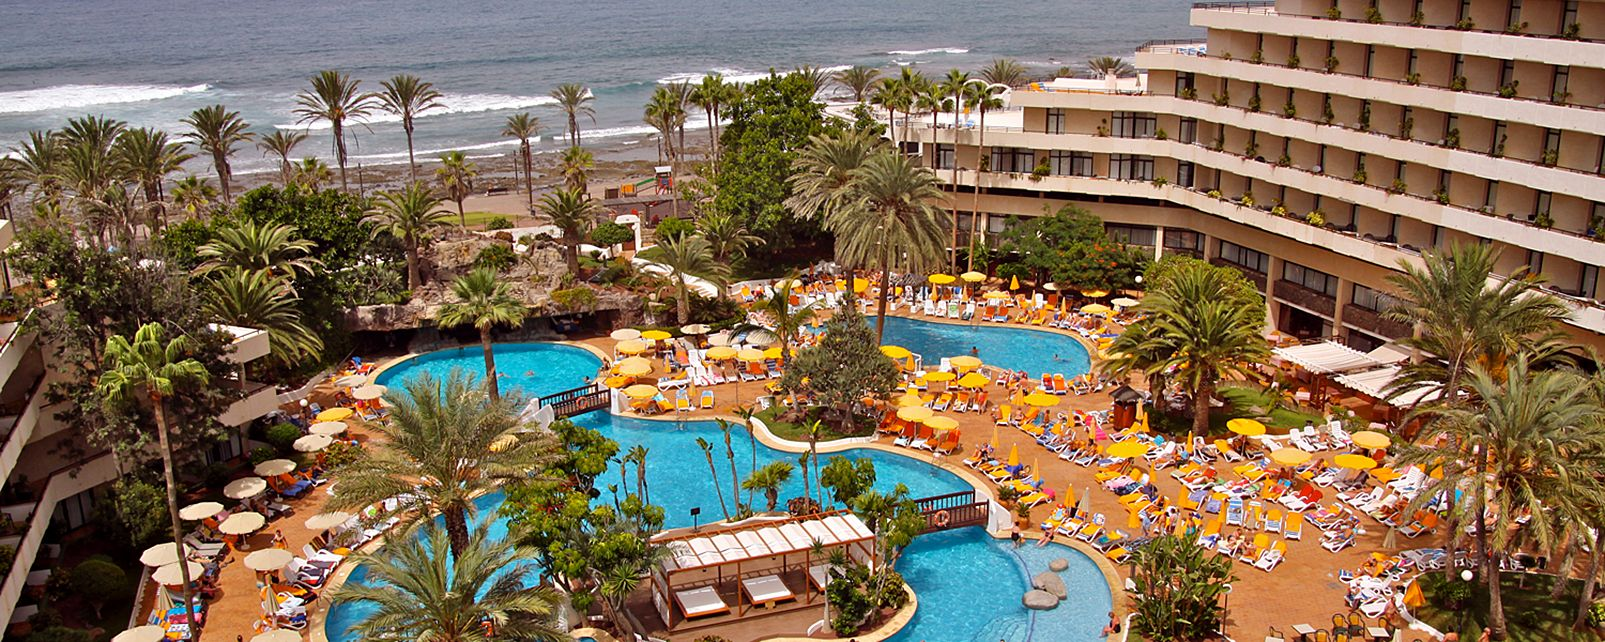 Family Hotels In Playa De Las Americas